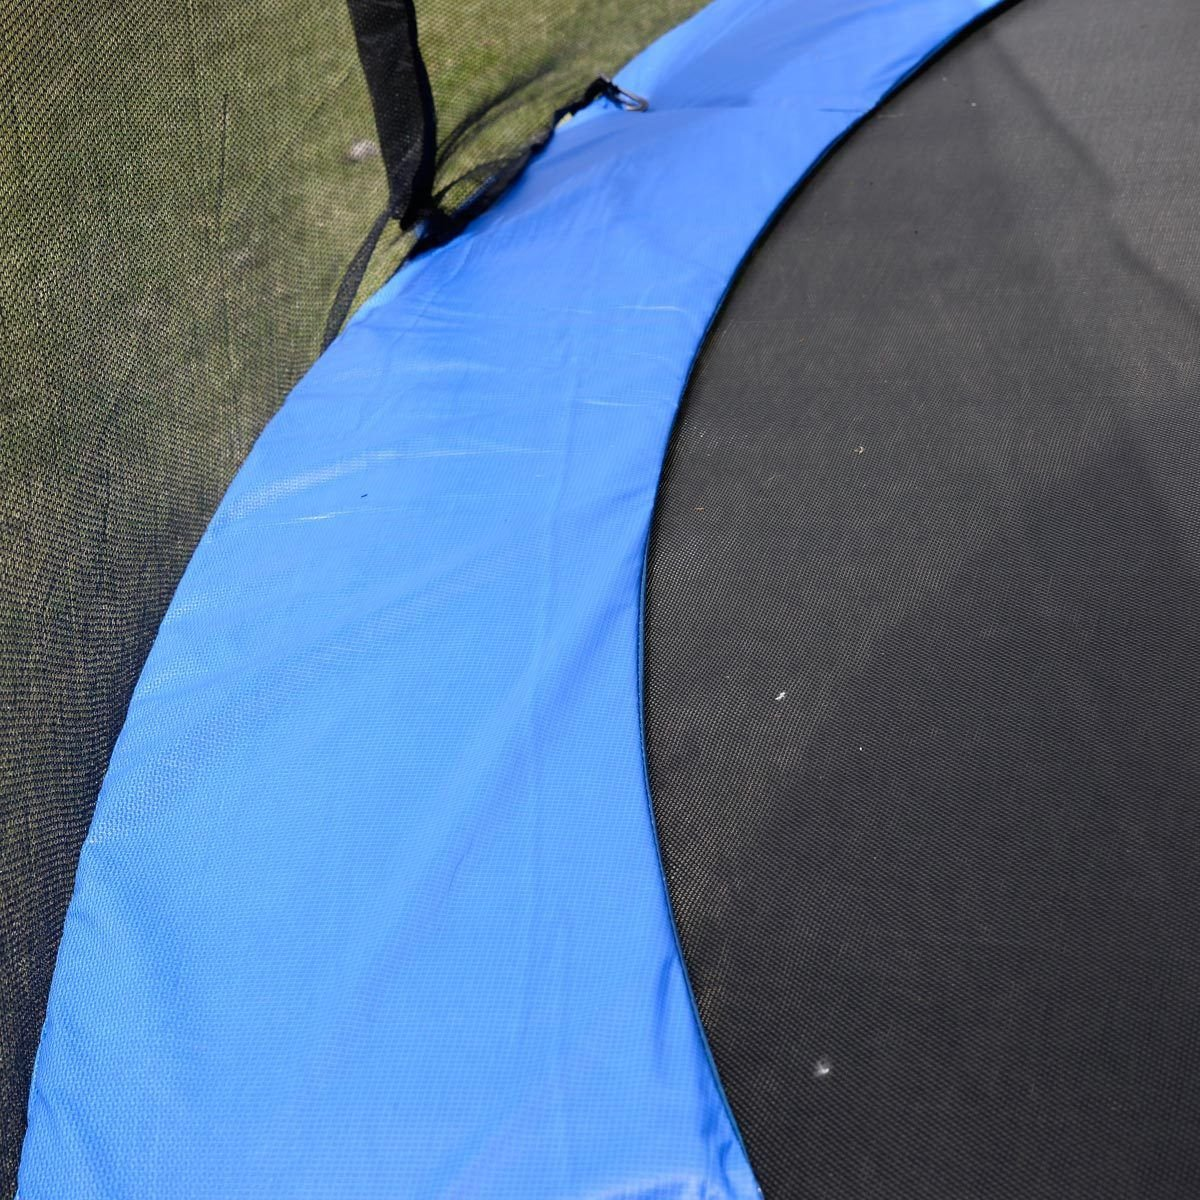 Safety Round Frame Blue Pad Spring Pad Replacement Cover for 10FT Trampoline New